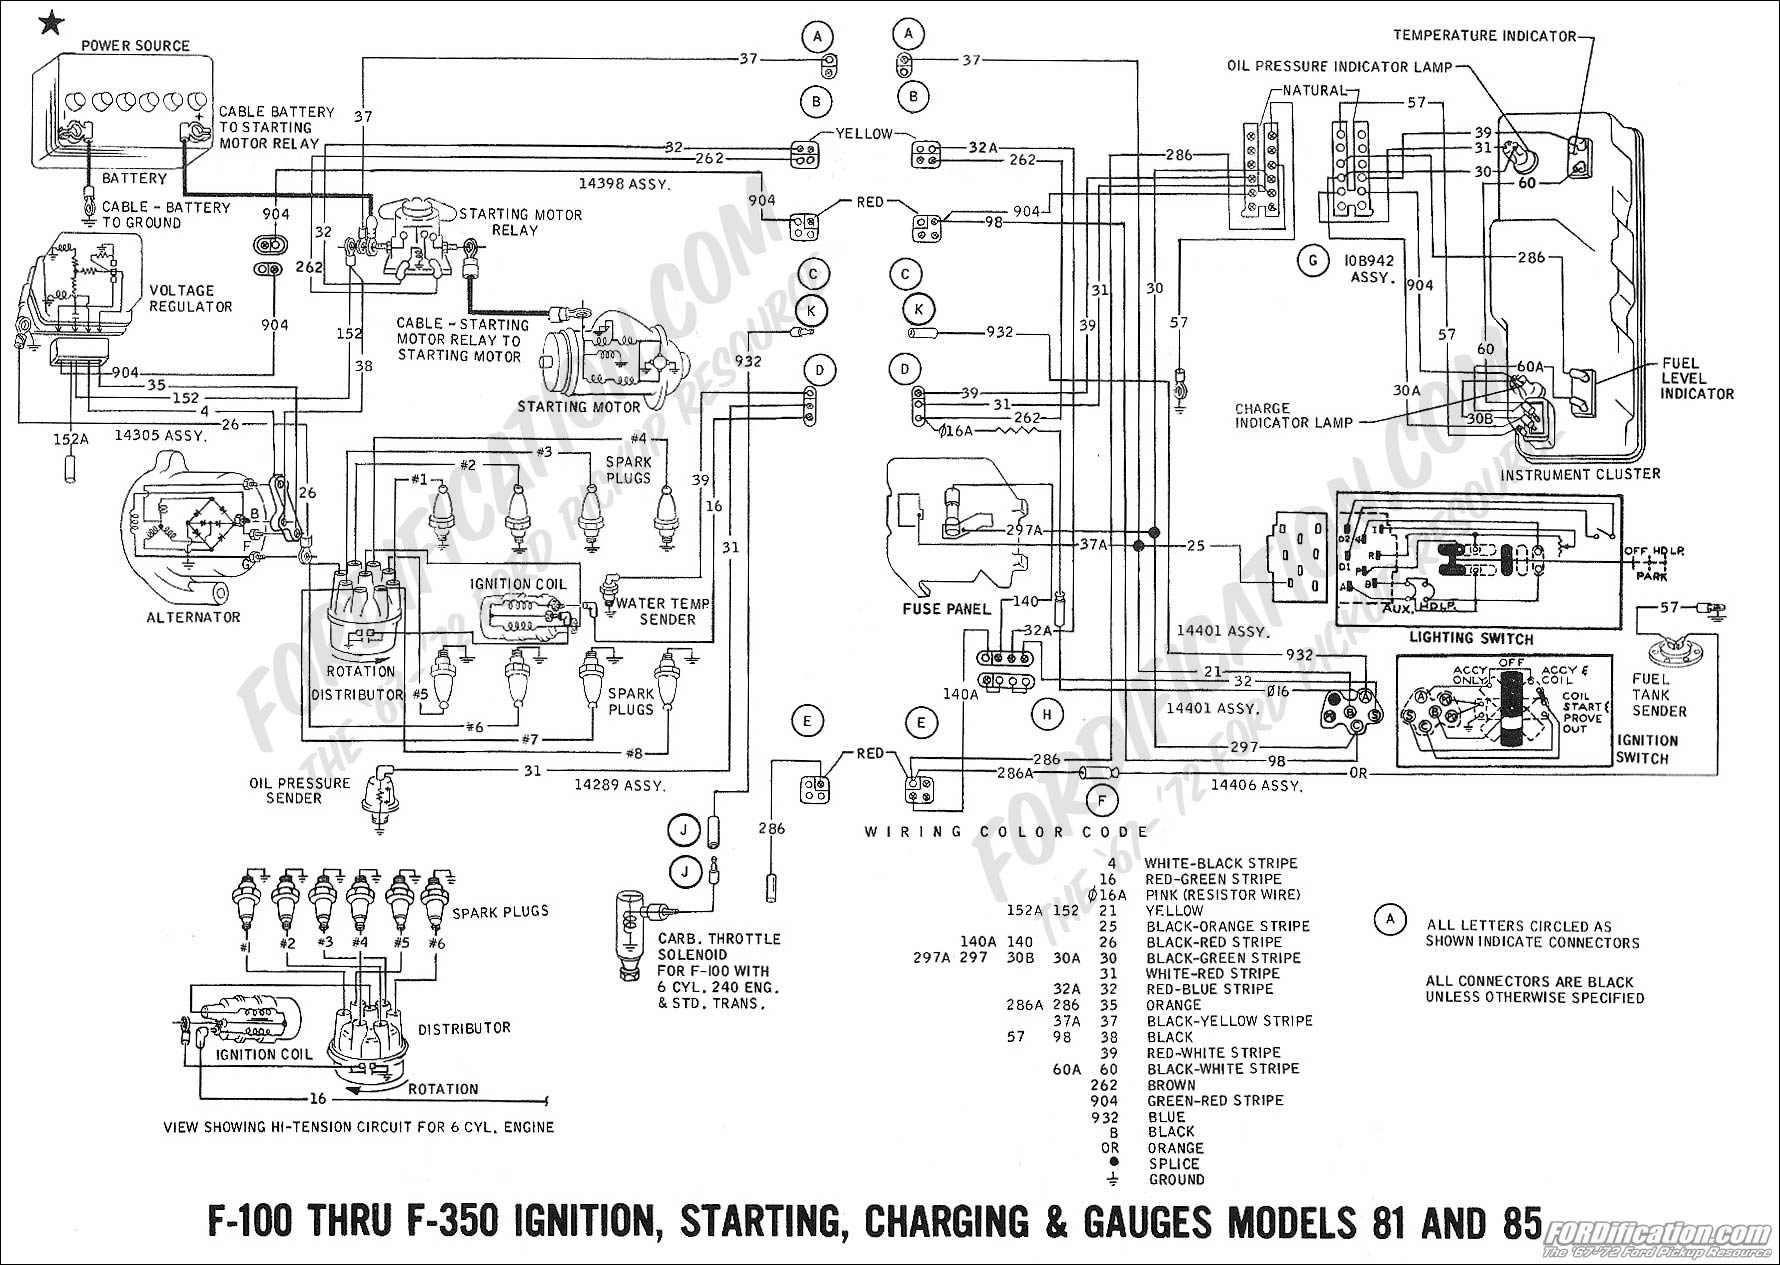 Amazing Wire Diagram For Fan On 1990 Ford Trucks Basic Electronics Wiring Wiring Cloud Biosomenaidewilluminateatxorg